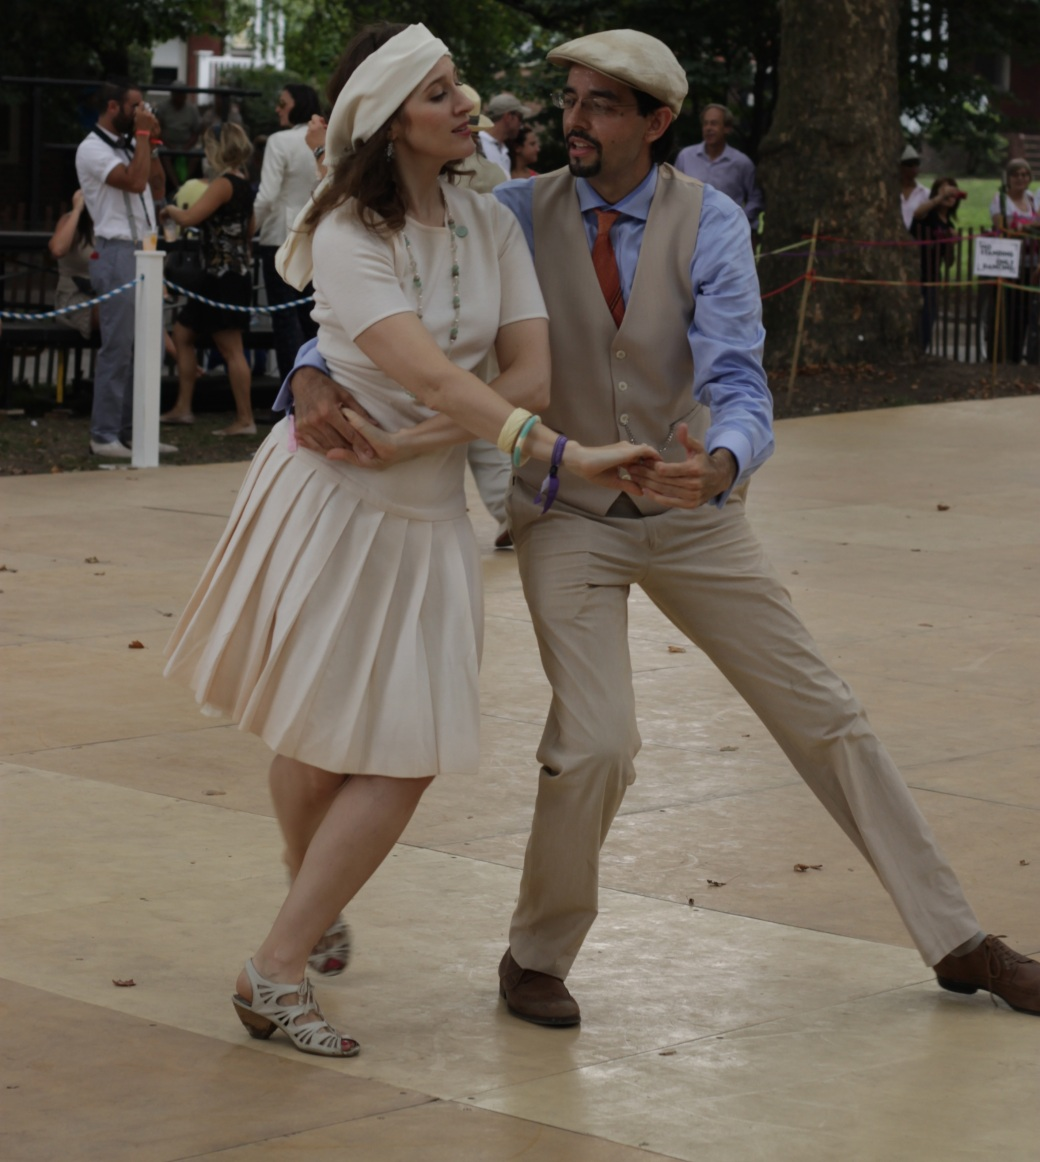 new york city governors island jazz age lawn party august 17 2014 68